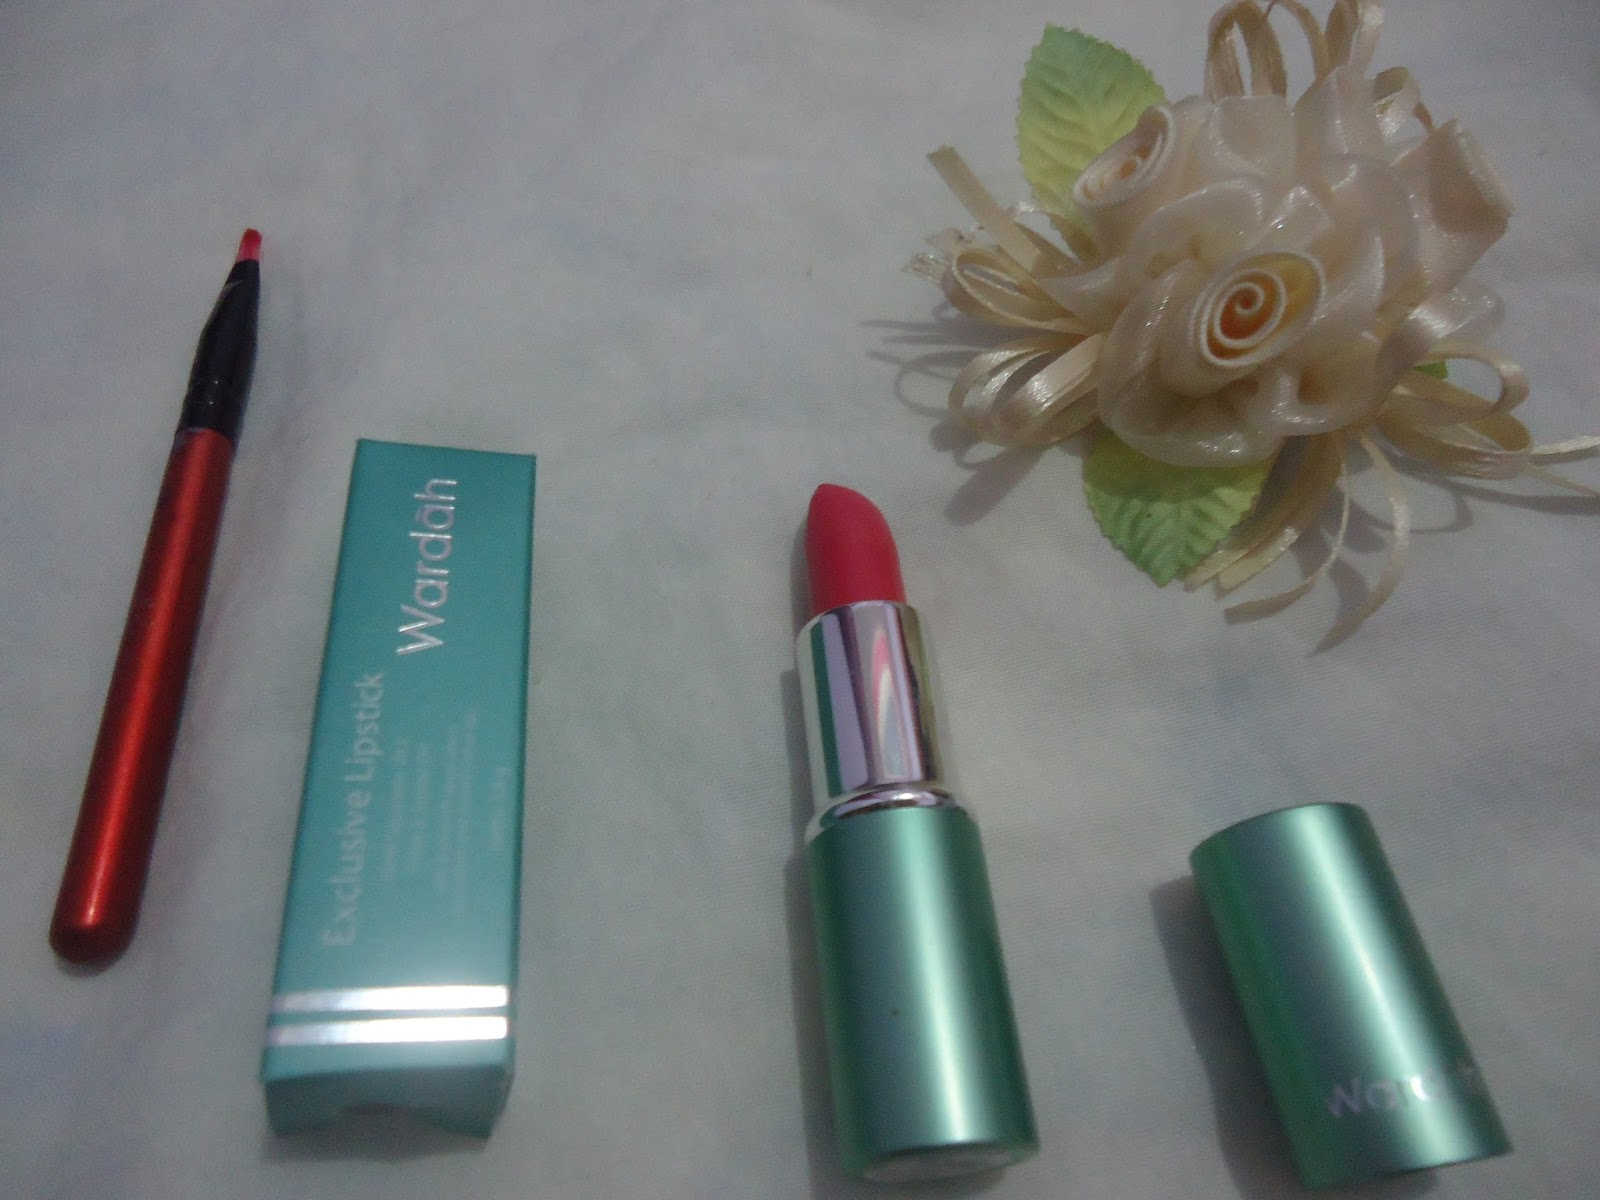 uli mayang Review WARDAH Exclusive Lipstick orchid pink 21